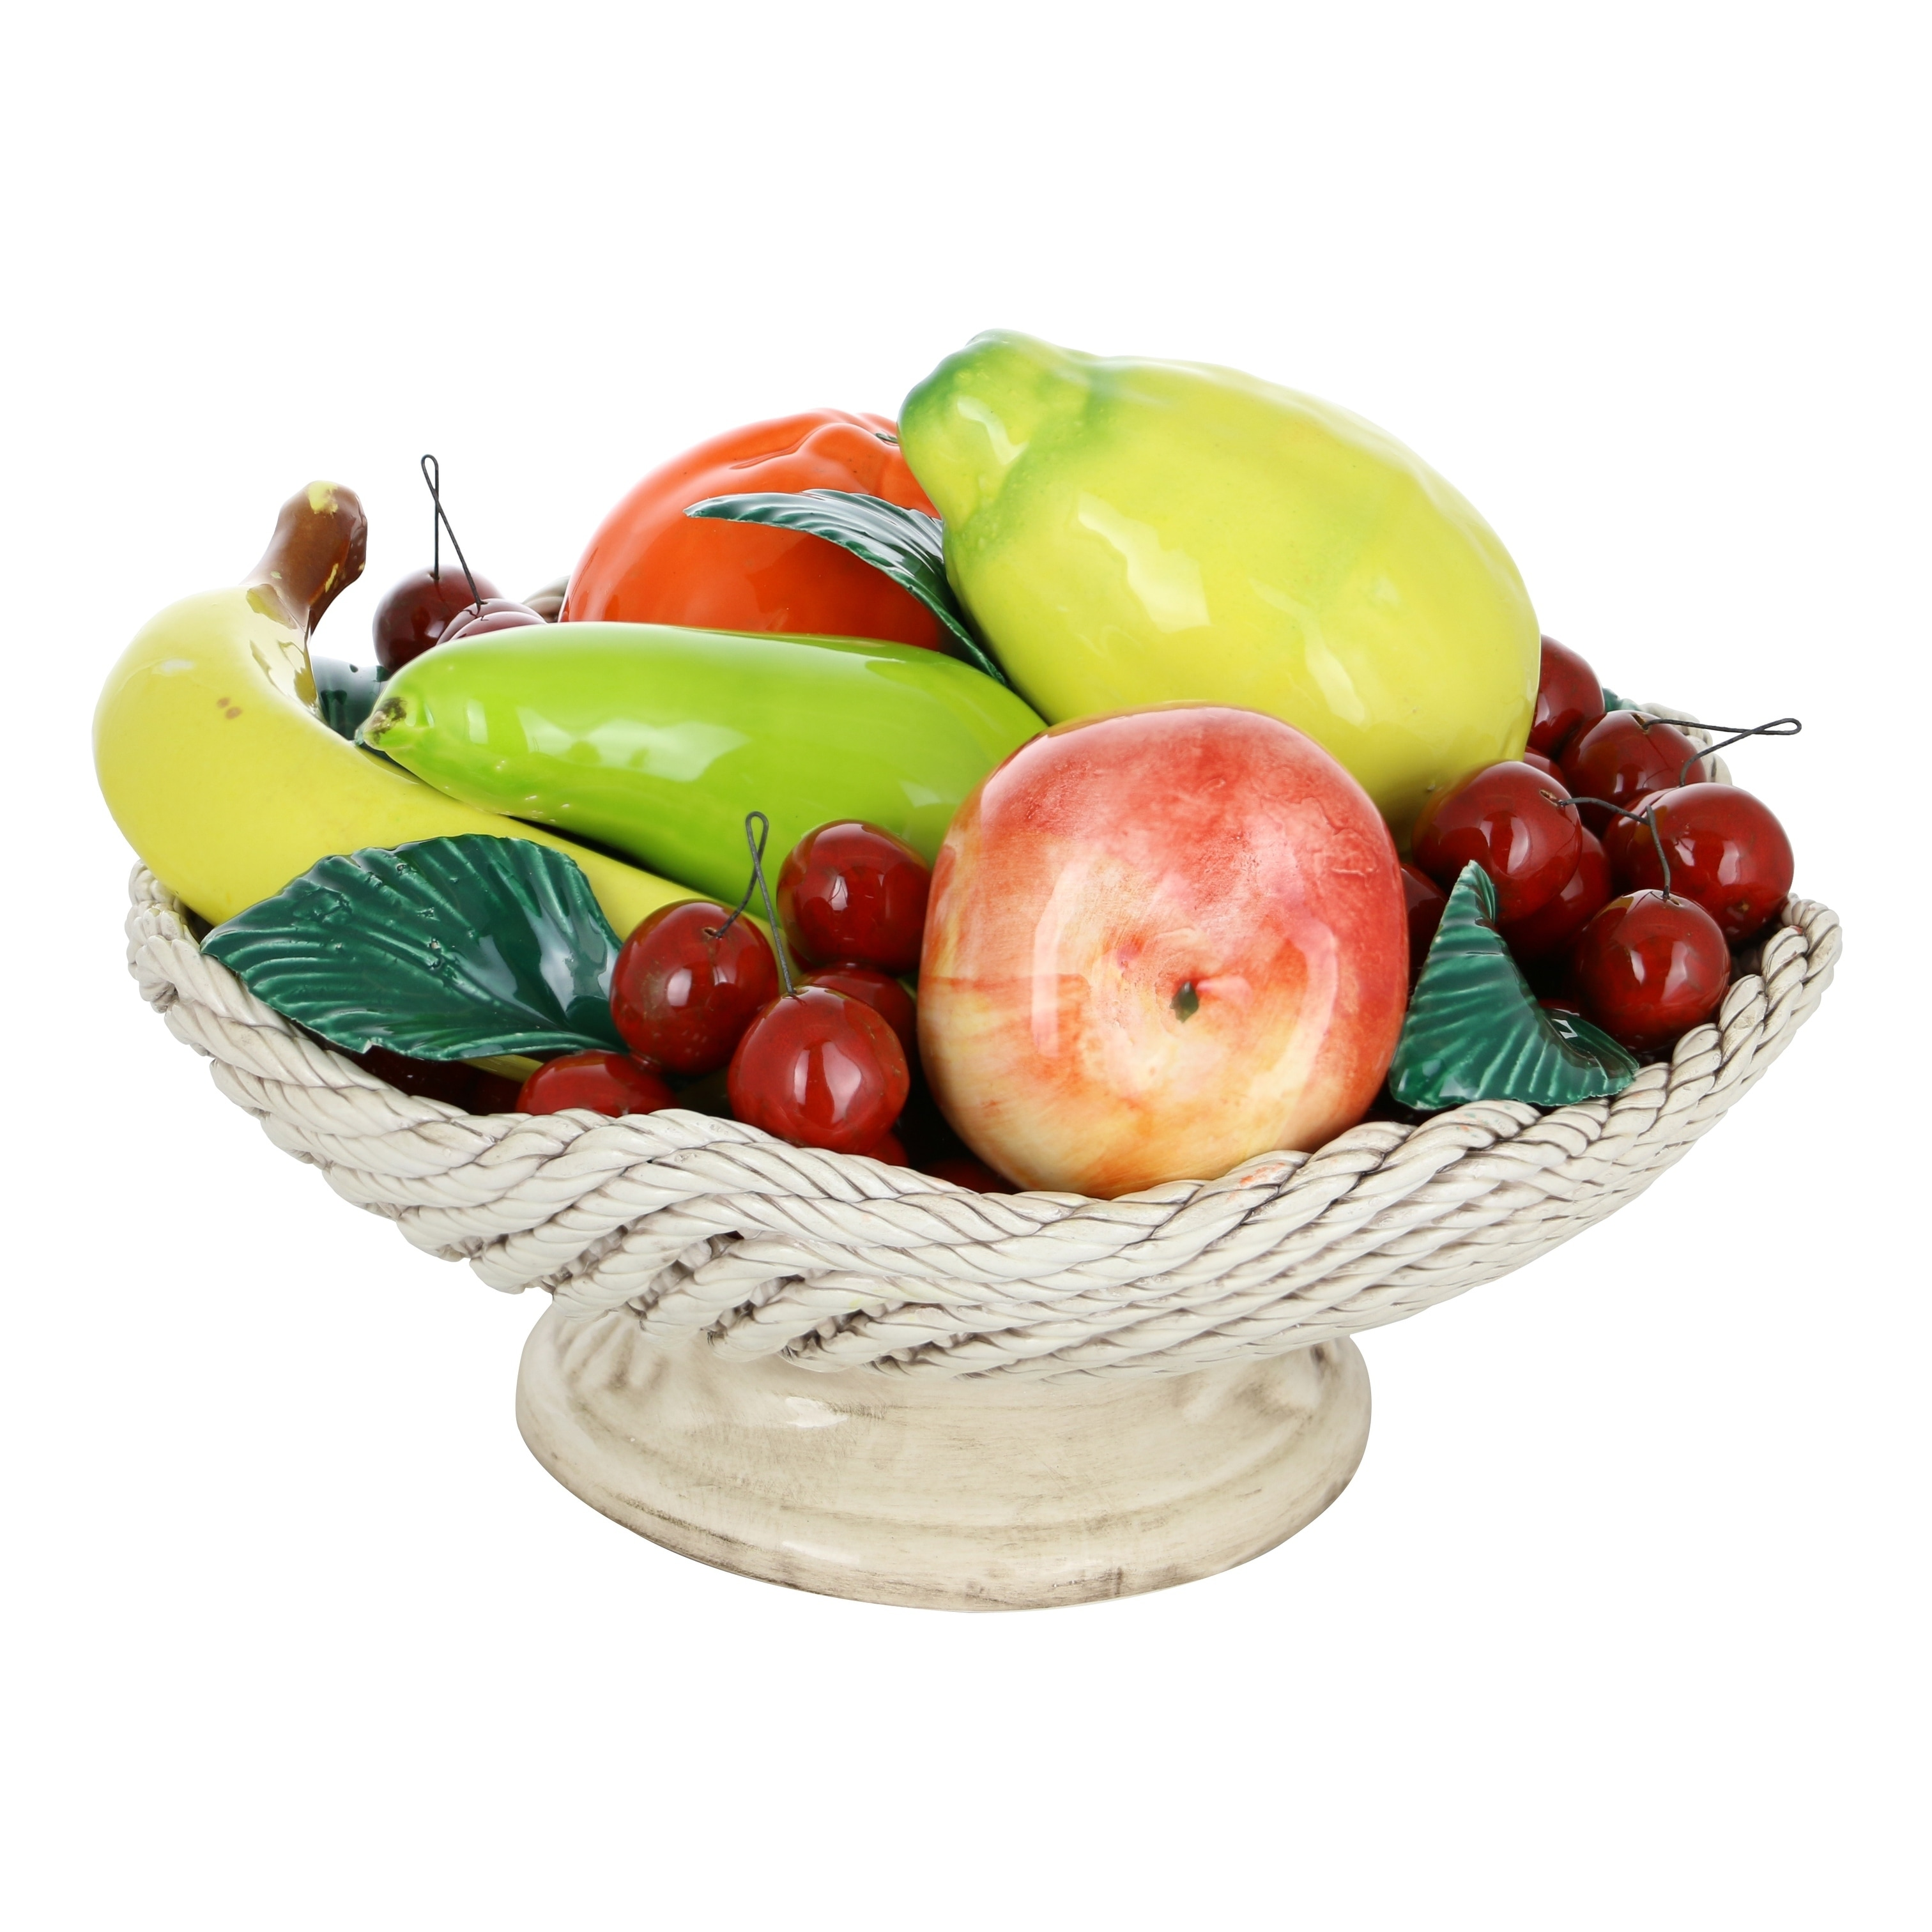 Shop Capodimonte Authentic Italian Fruit Basket On Short White Base 12 X 9 Made In Italy Large Fruit Bowl W Woven Design Overstock 24267464,Data Entry Jobs Online From Home Without Investment